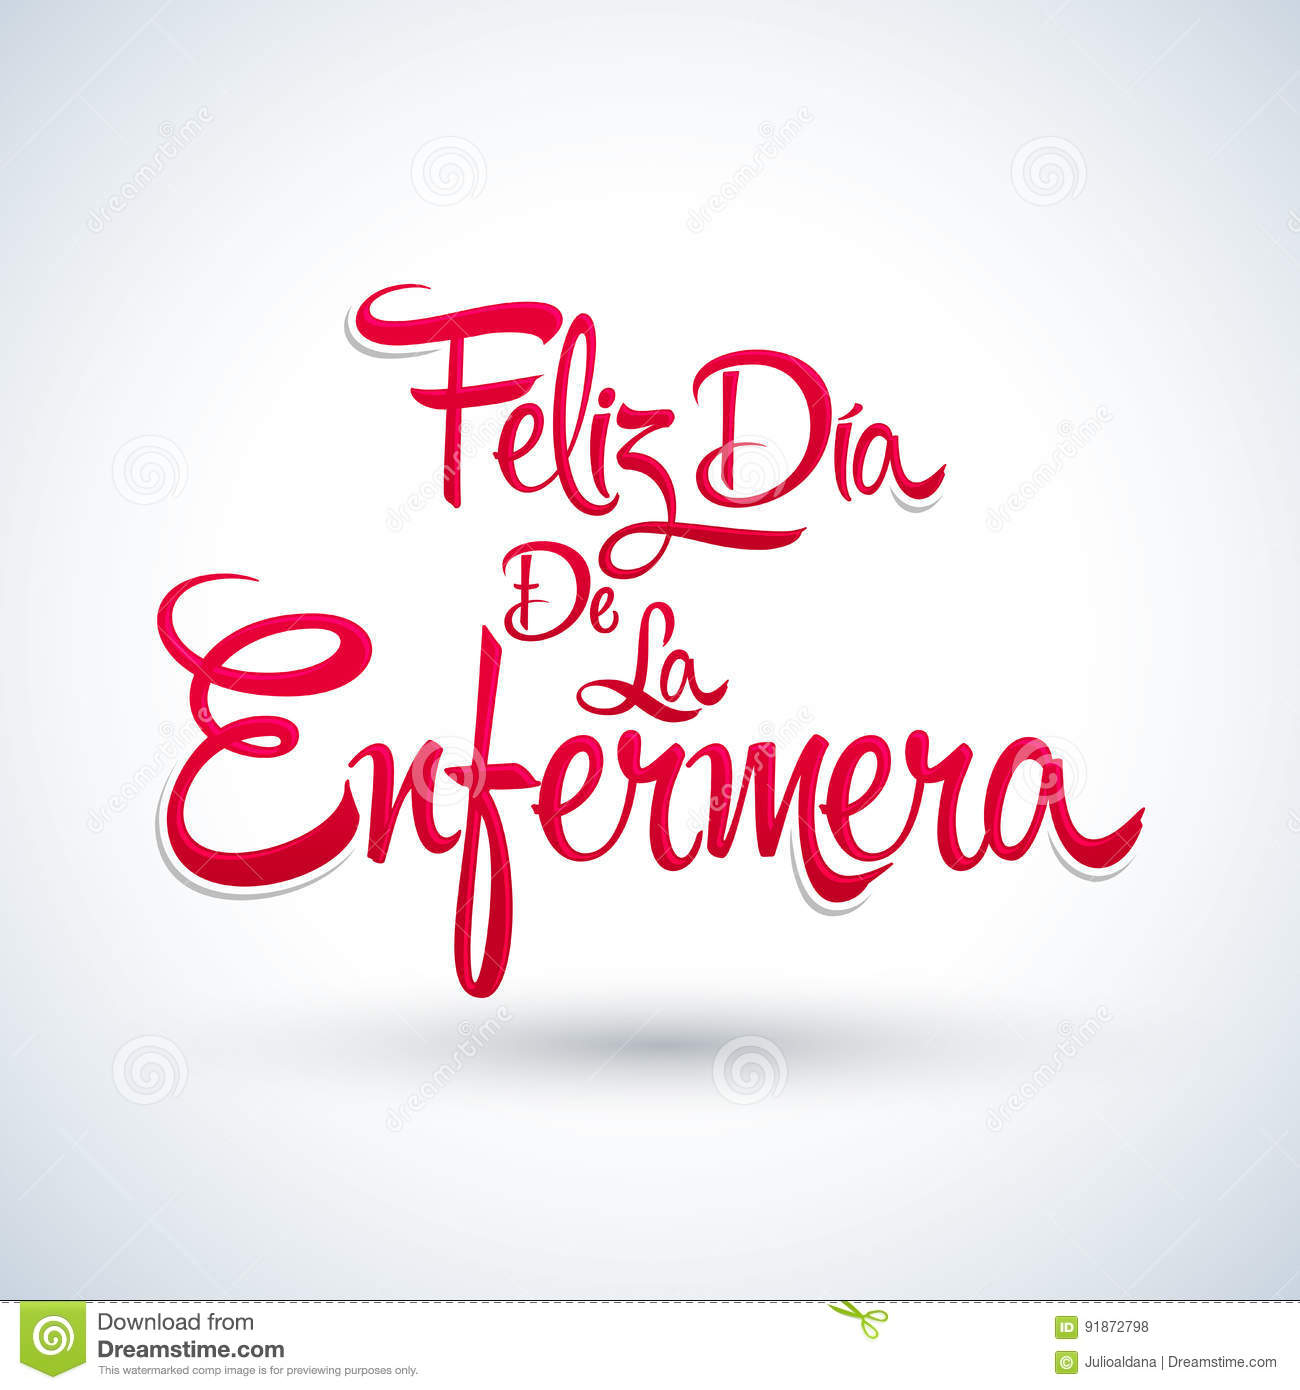 Feliz dia de la Enfermera, Happy Nurses day spanish text